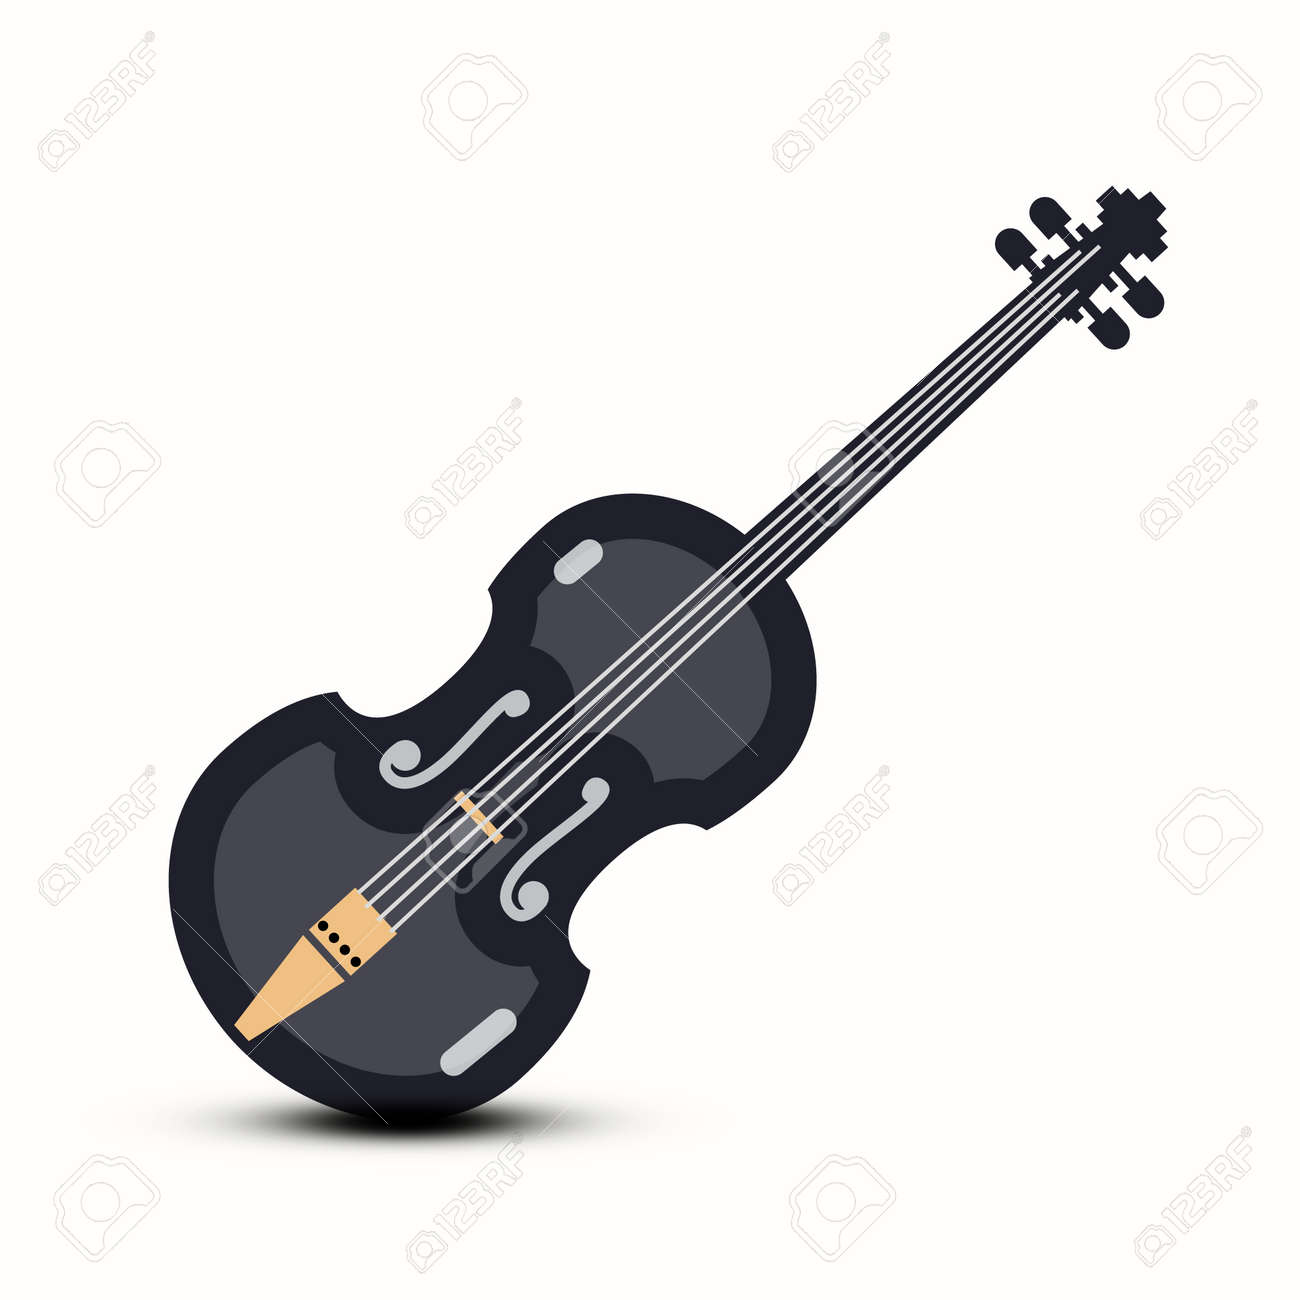 Violin Vector Musical Instrument Logo Design Isolated - 158044894